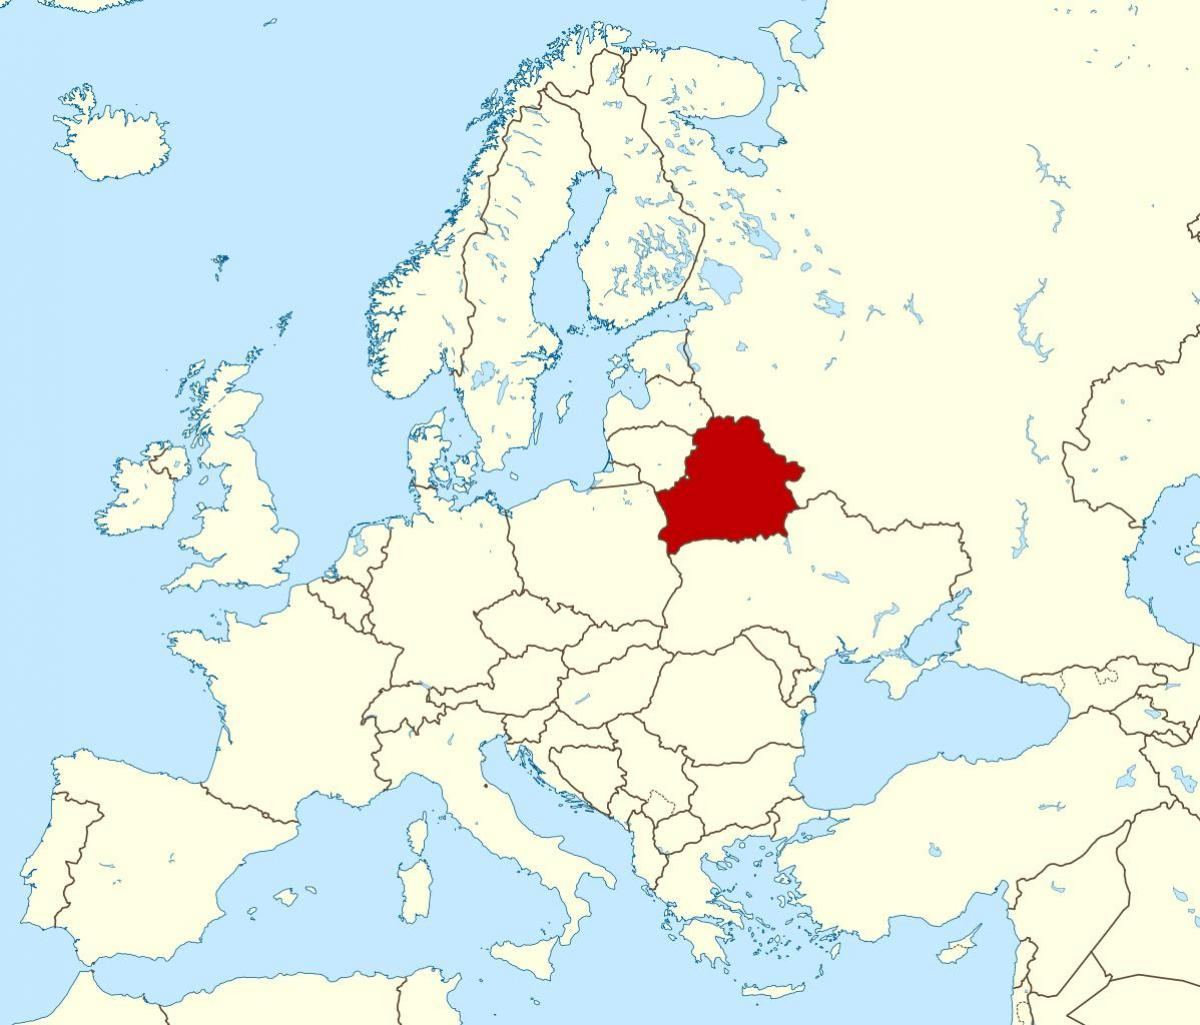 Belarus location on world map